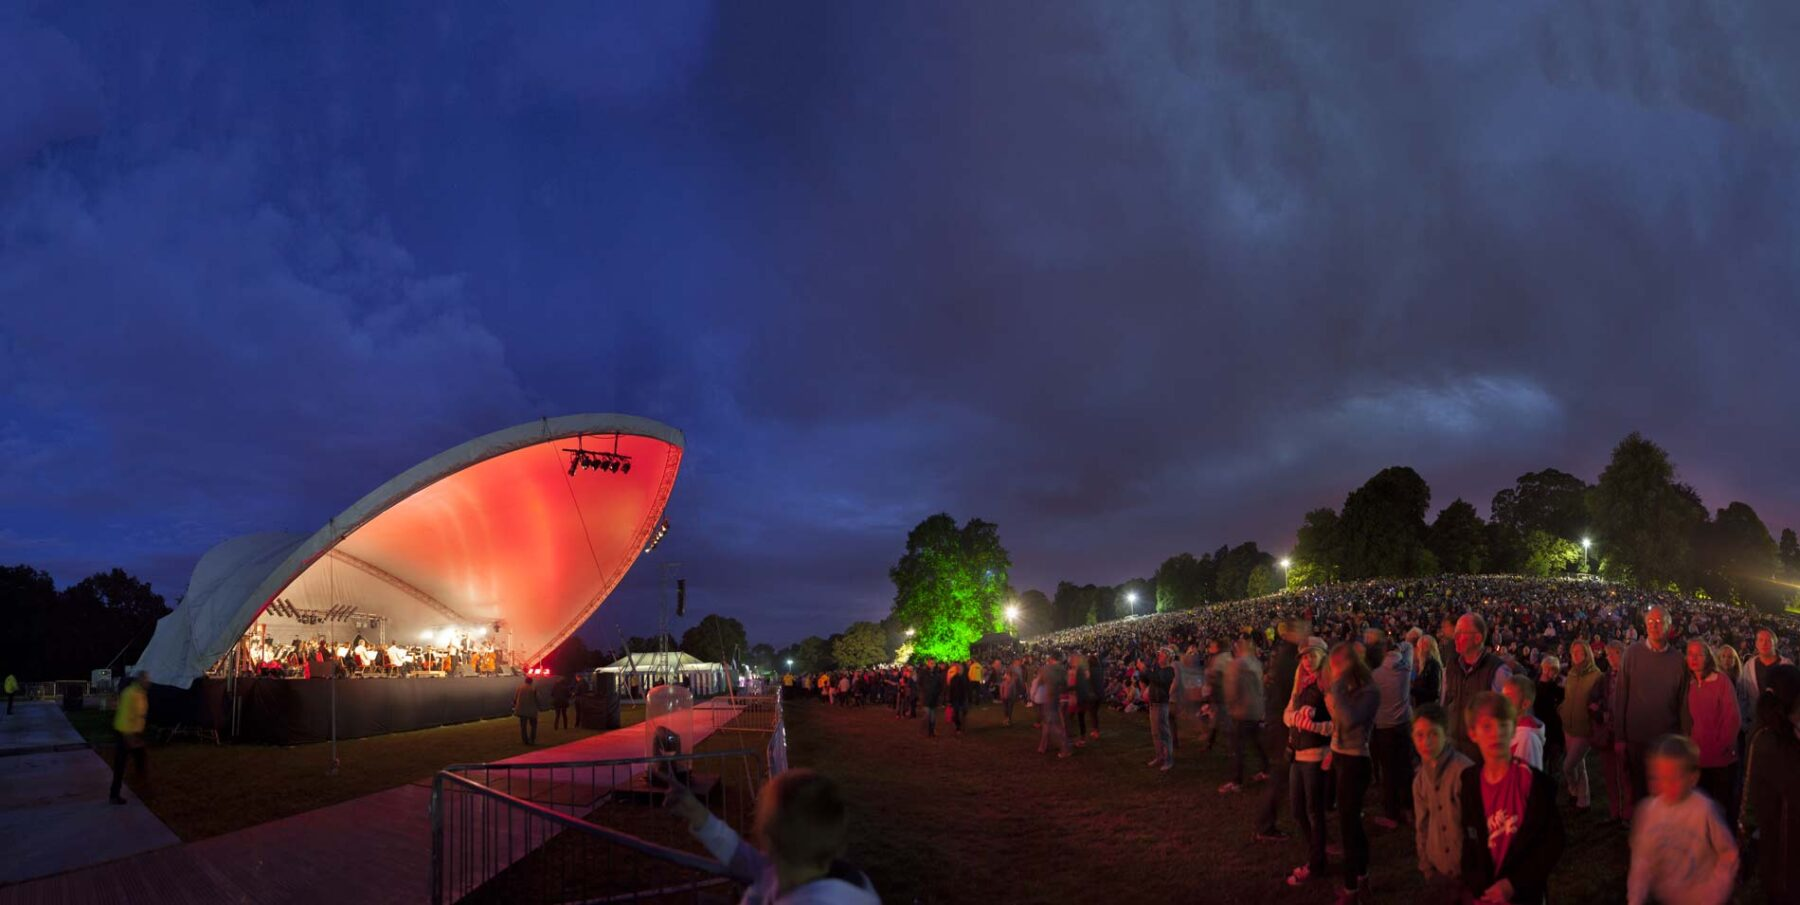 Darley Park Concert at dusk with stage left and crowd right